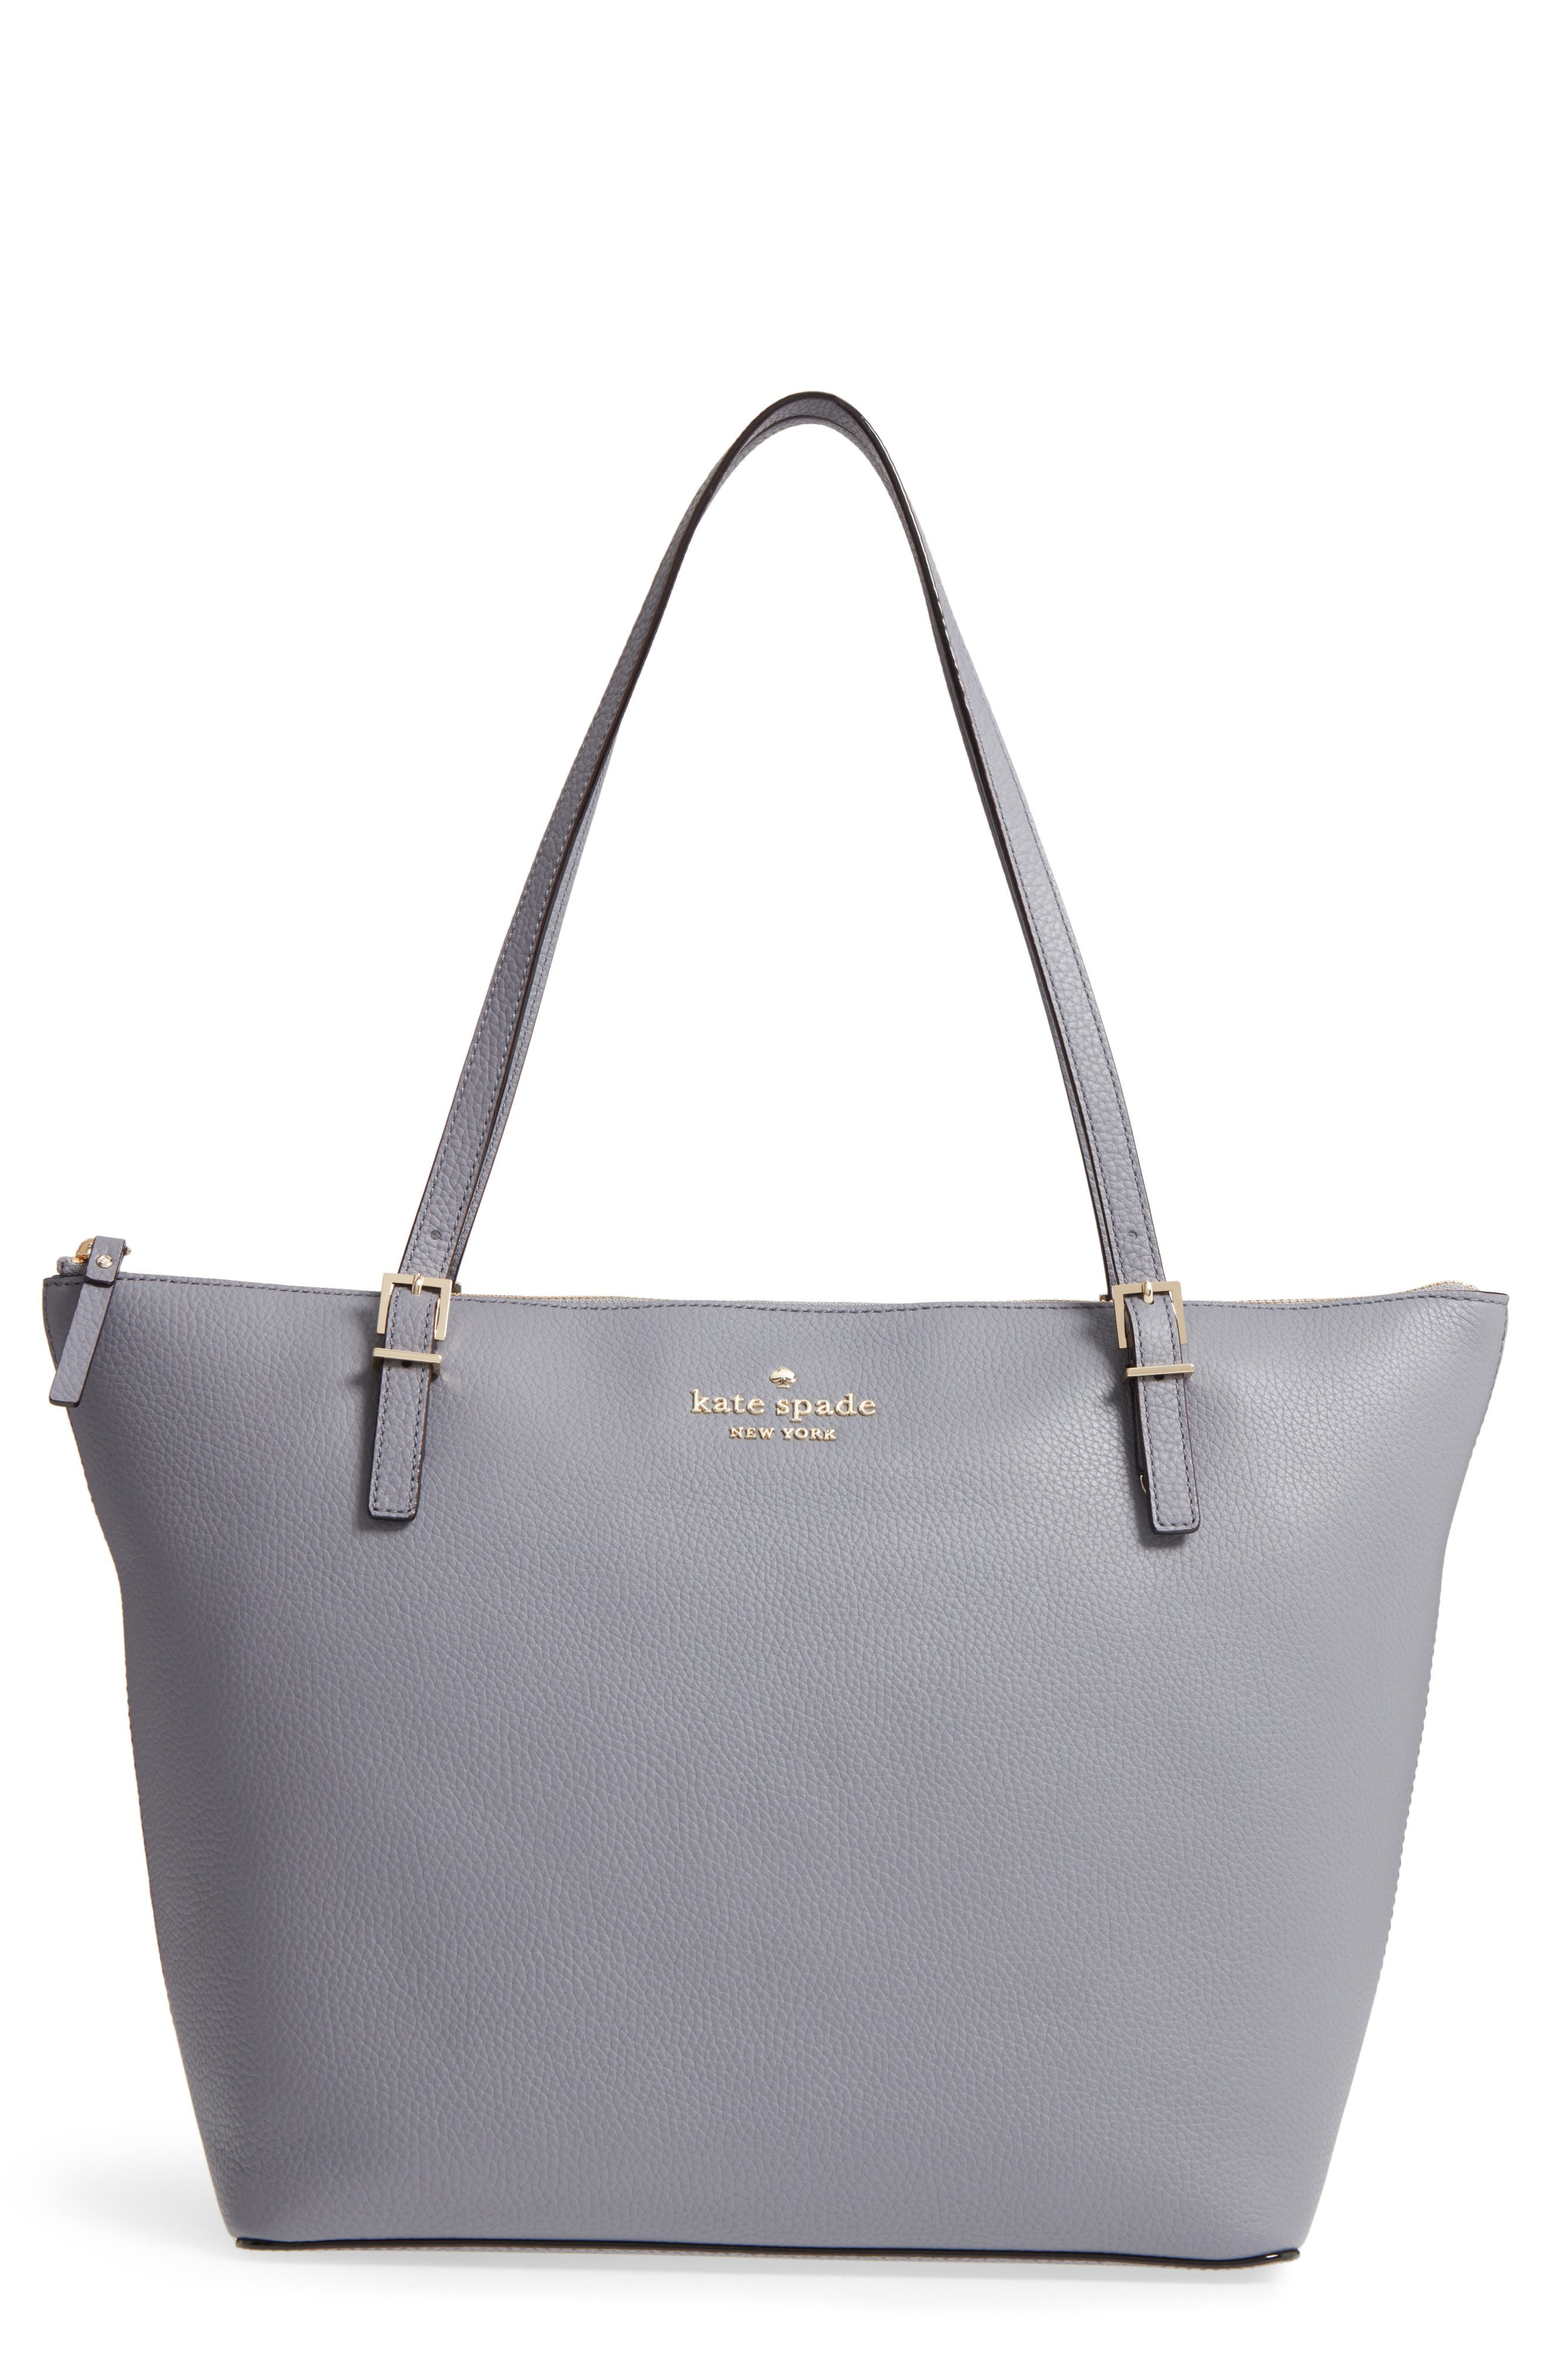 kate spade new york watson lane - maya leather tote